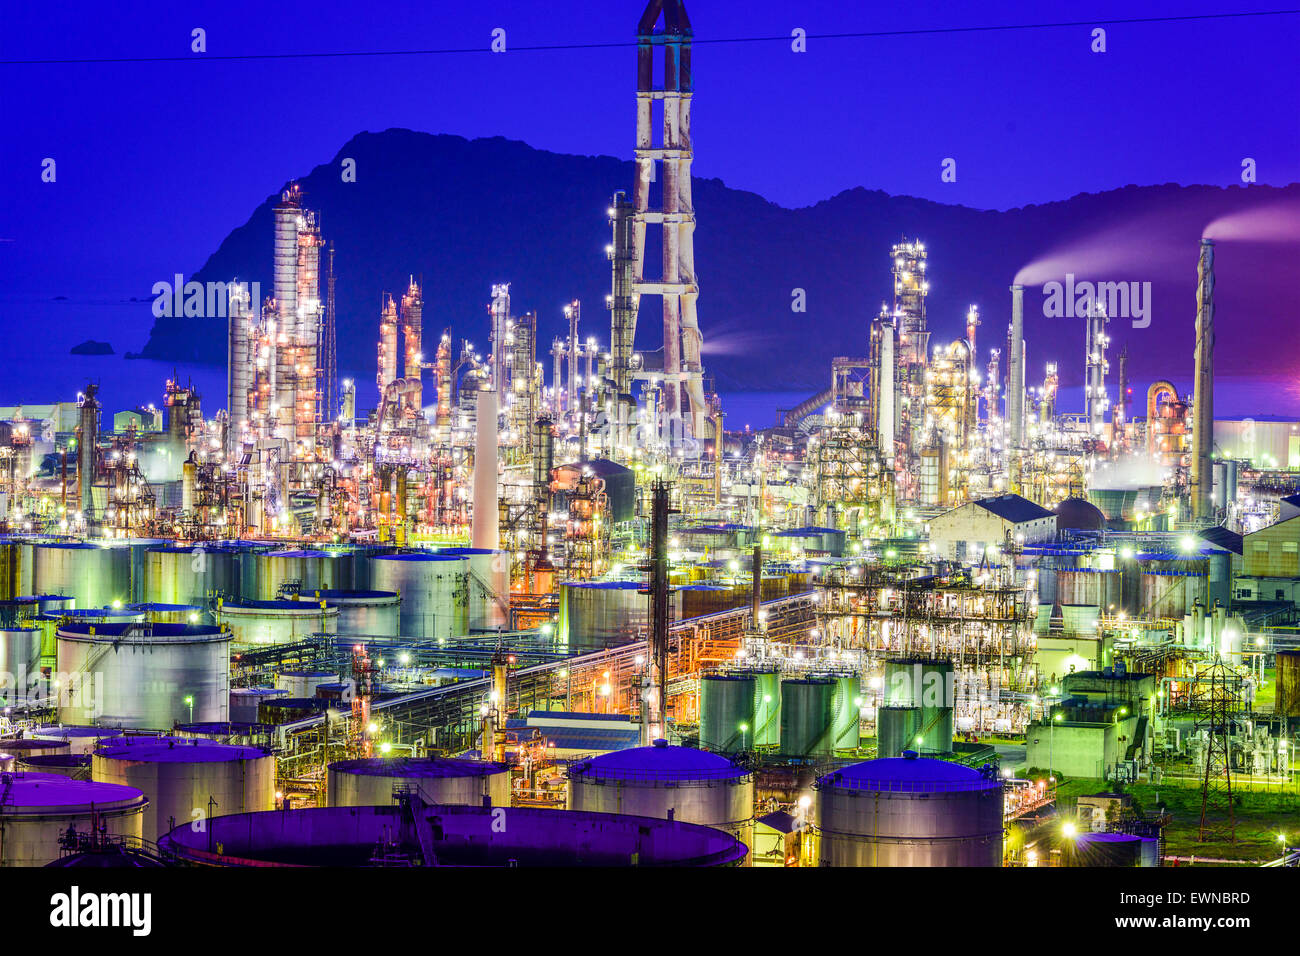 Oil refineries of Wakayama, Japan. - Stock Image